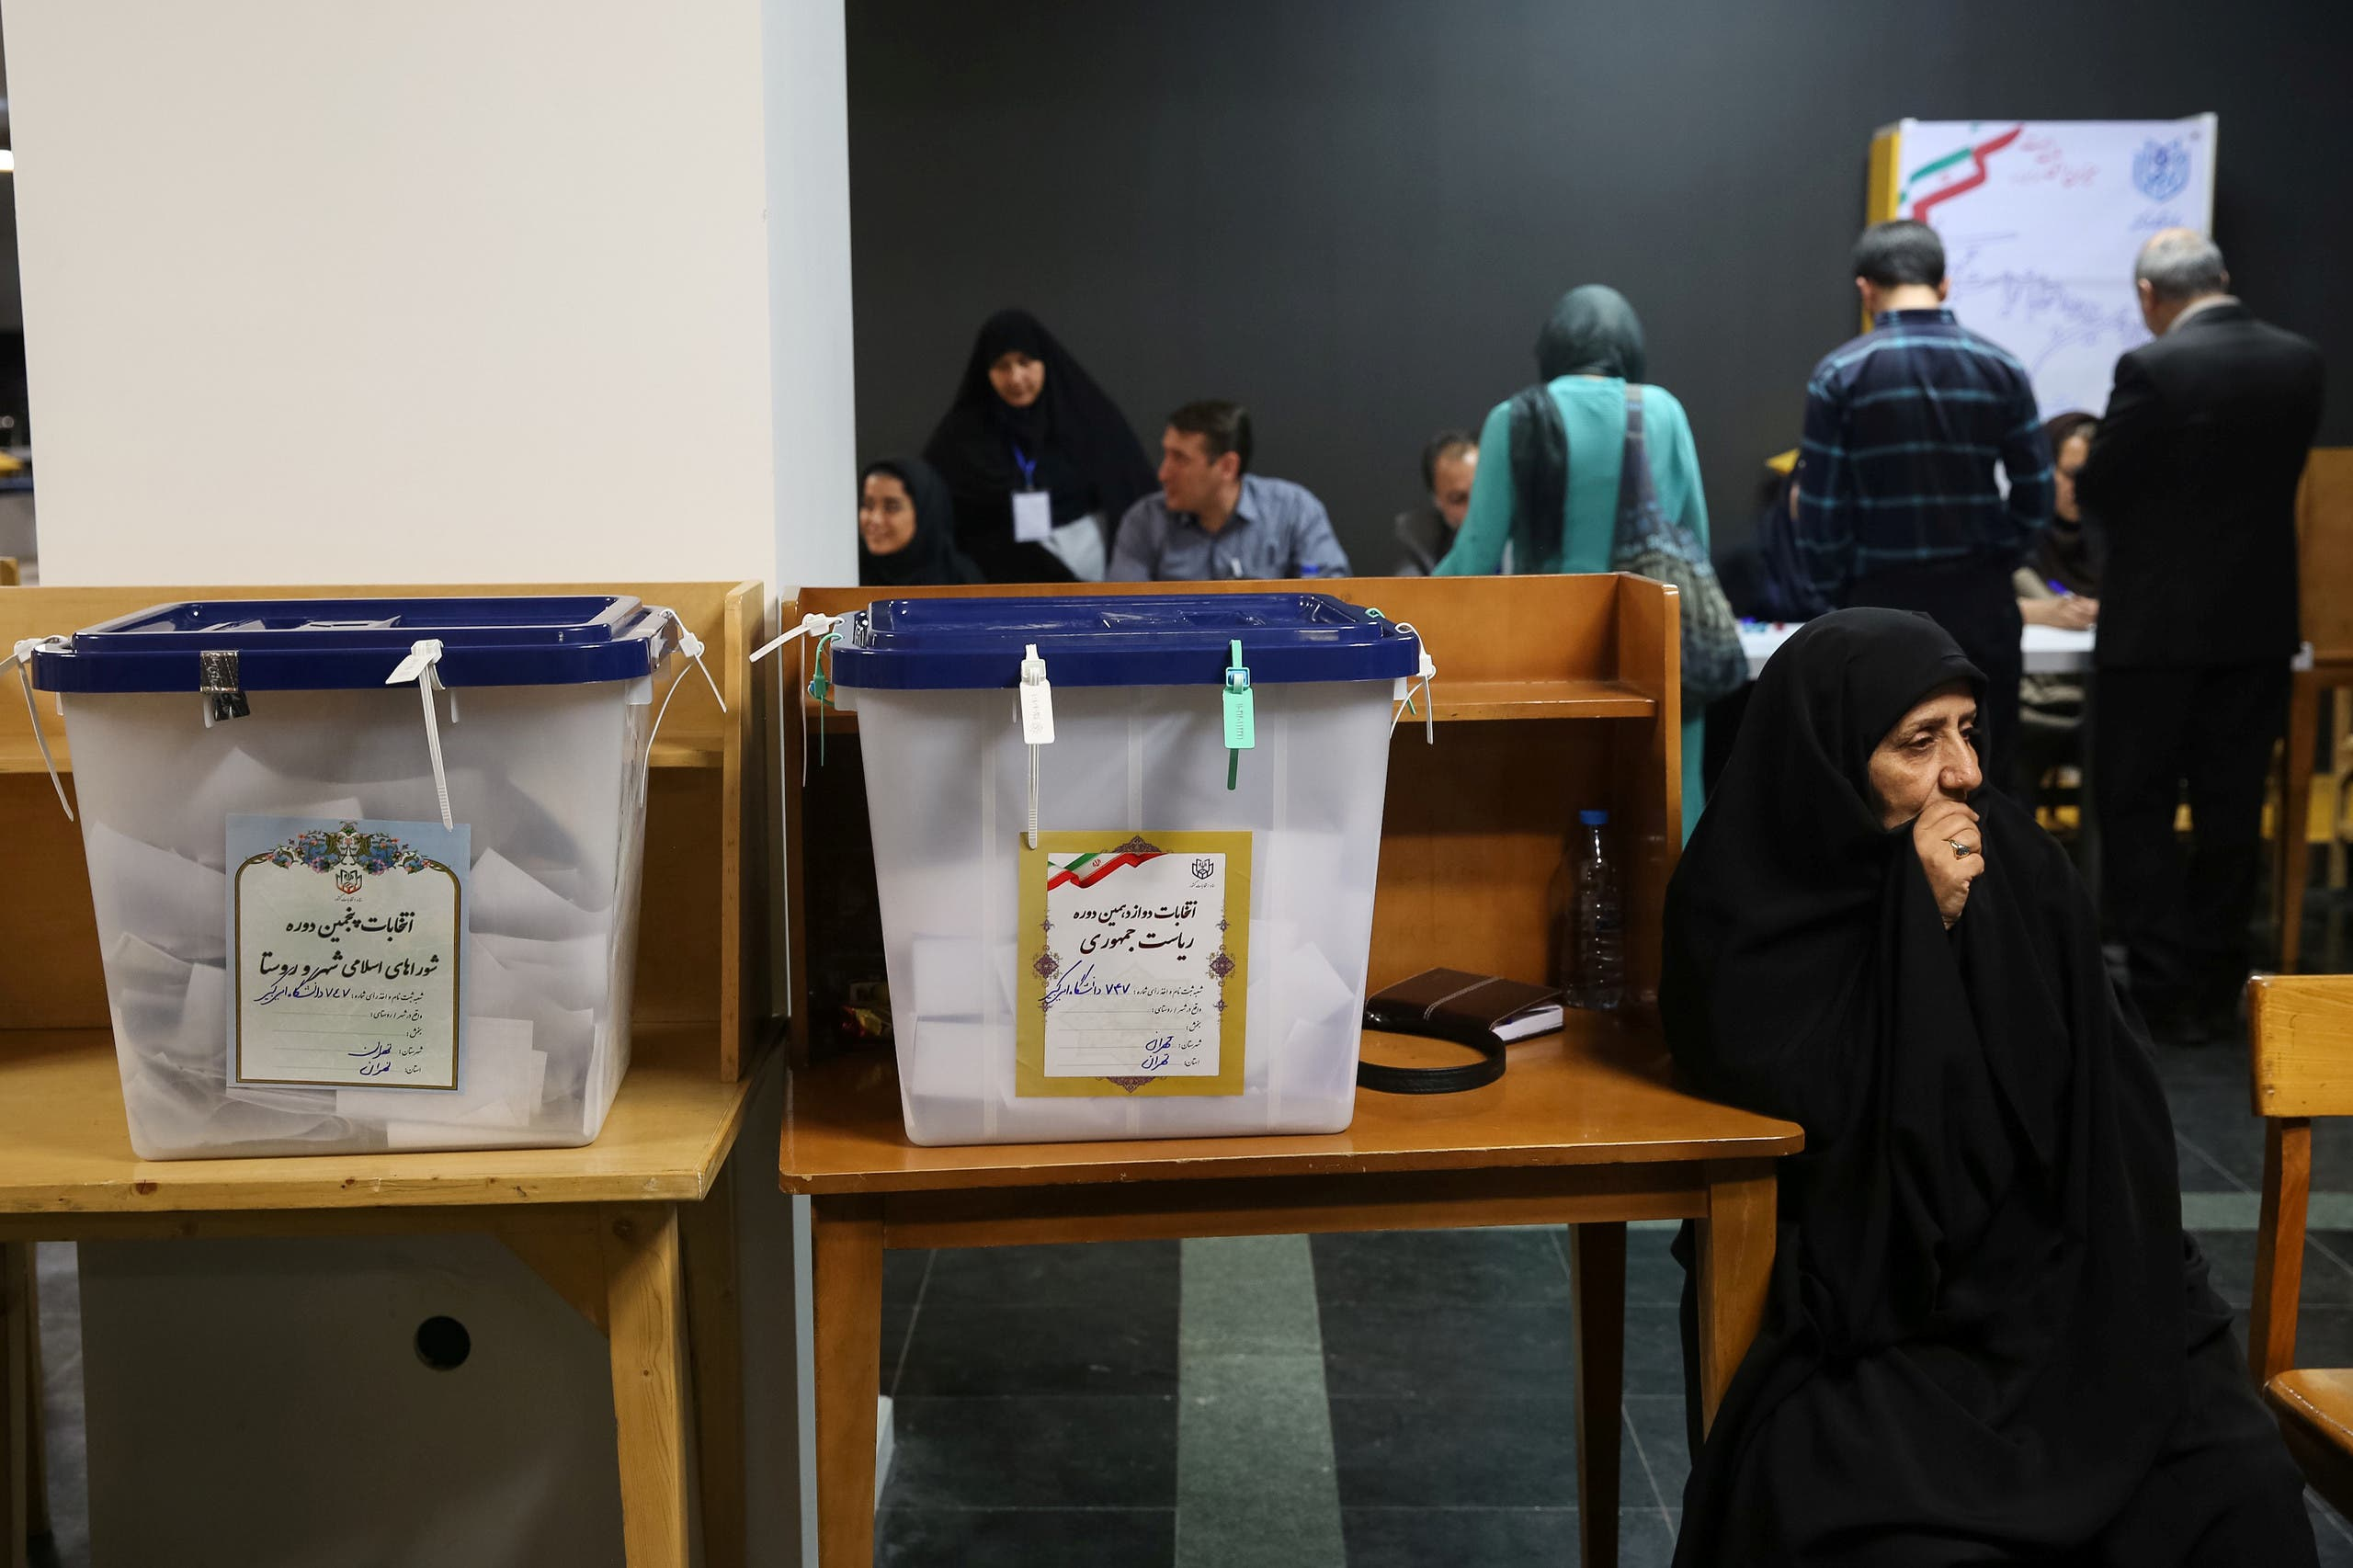 Electoral employees sits next to ballot boxes before closing vote for the presidential election in a polling station in Tehran, Iran, May 19, 2017. (Reuters)